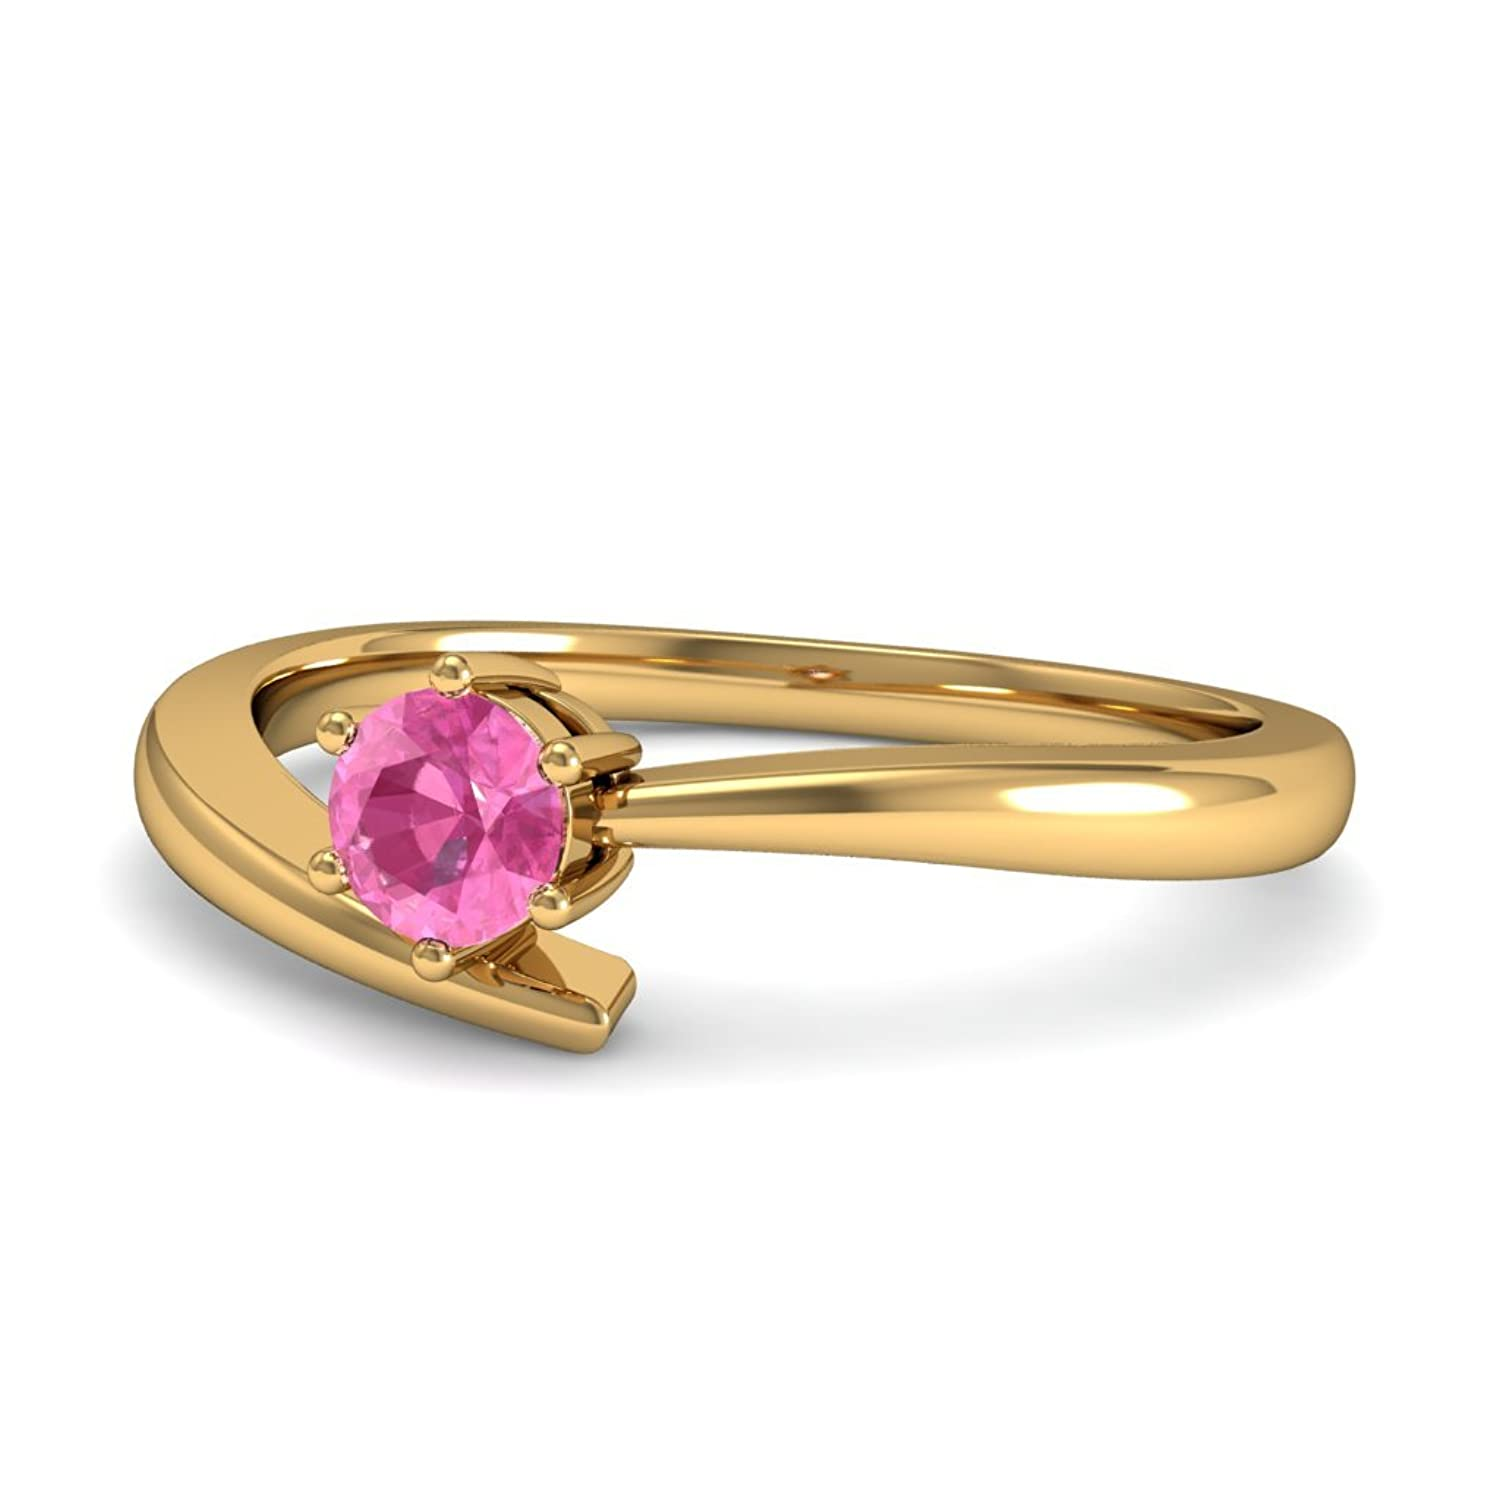 online ring buy store dp bluestone gold amaryllis india yellow in prices amazon jewellery pink low and at sapphire